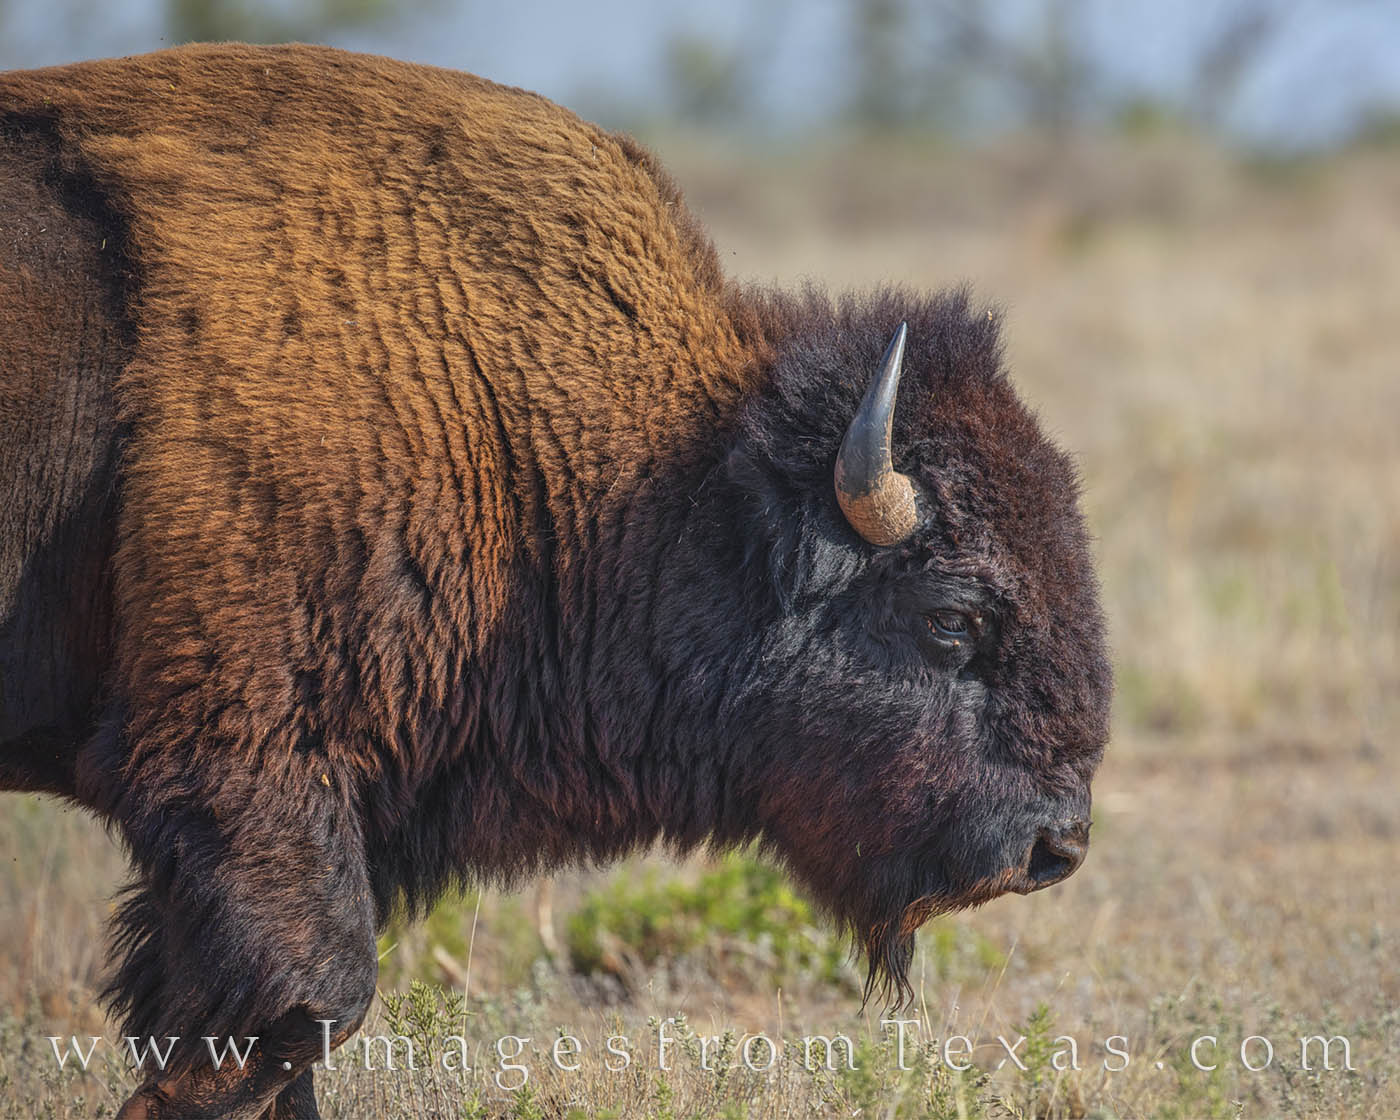 Buffalo are icons of the old west, and in Caprock Canyons State Park, the largest herd of buffalo in the United States roams...